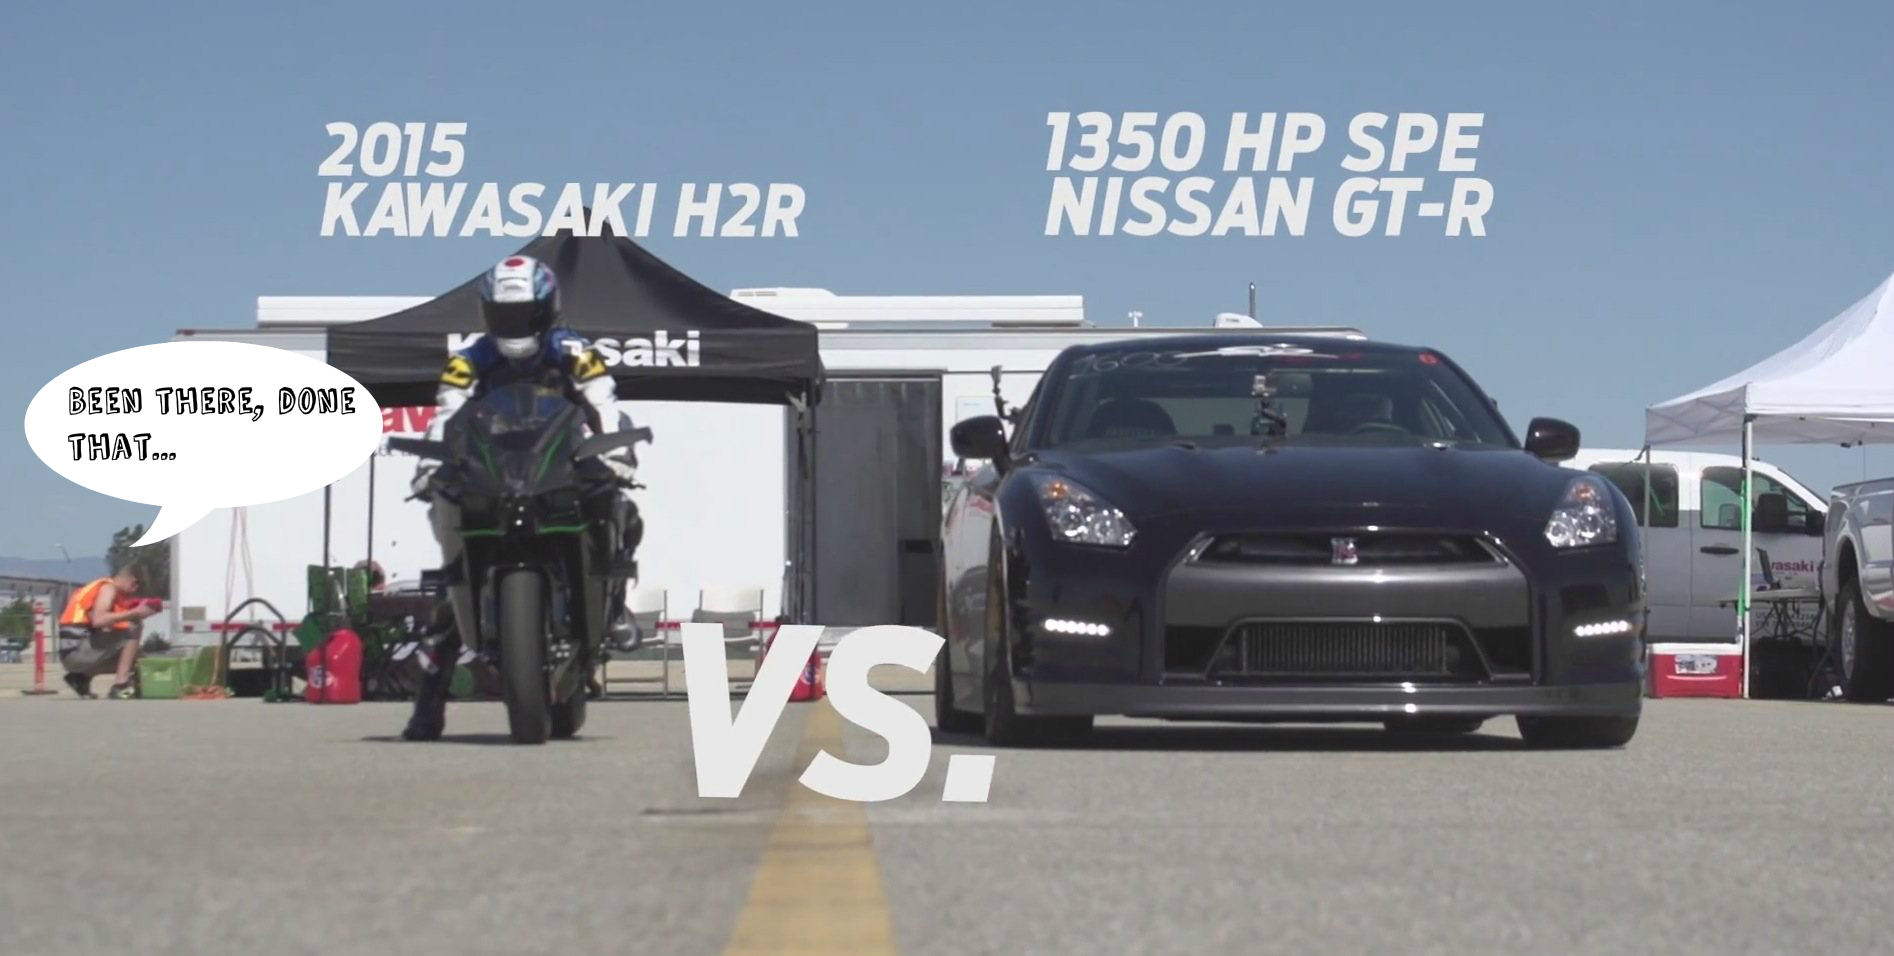 Kawasaki Ninja H2r Drag Races 1350 Hp Nissan Gt R Gets Trampled